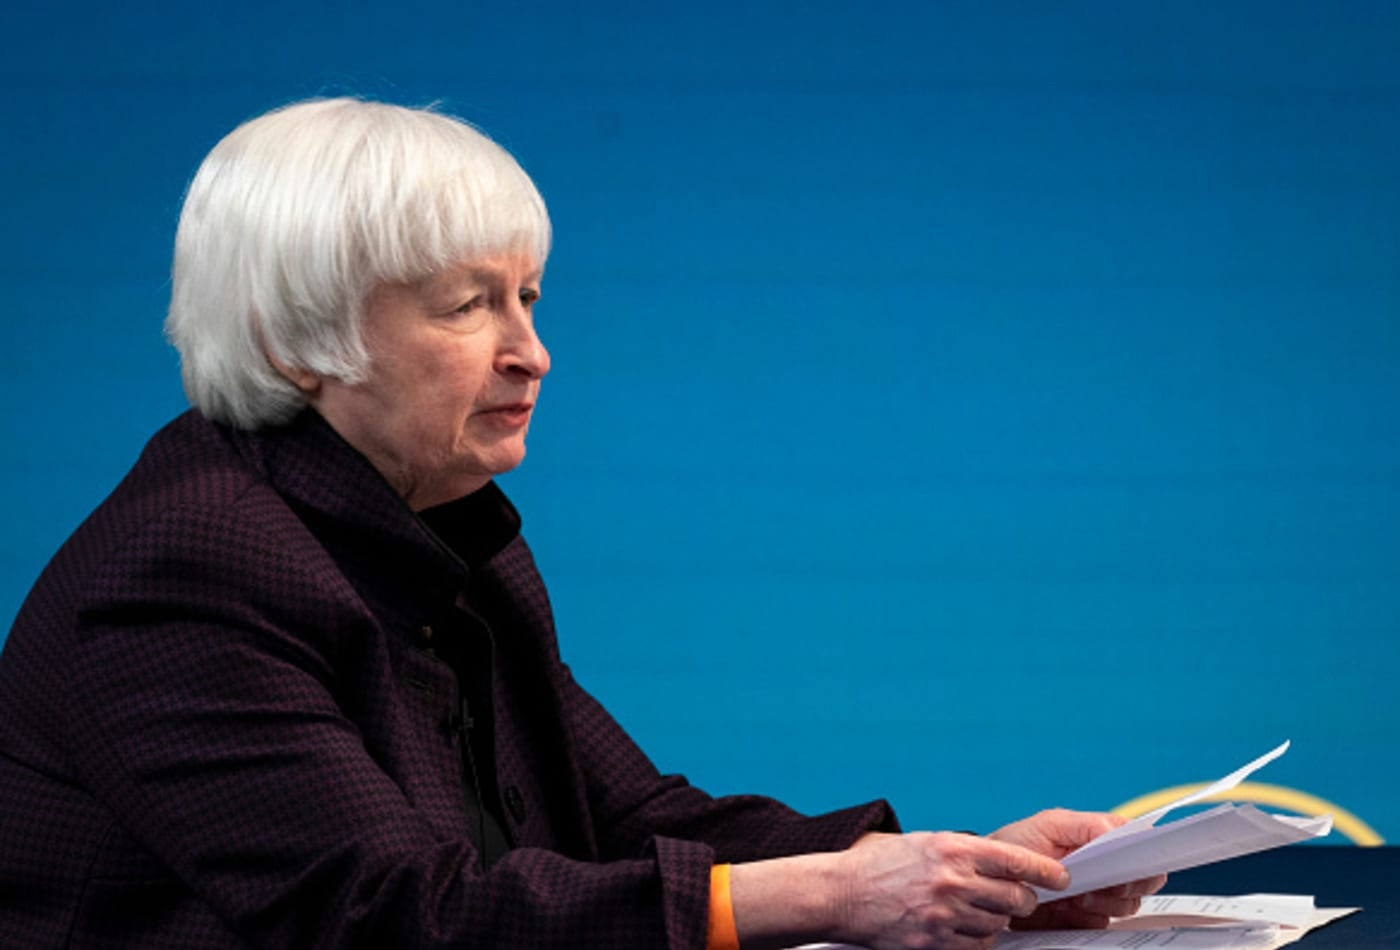 Yellen outlines bold climate agenda calling for net-zero emissions by 2035